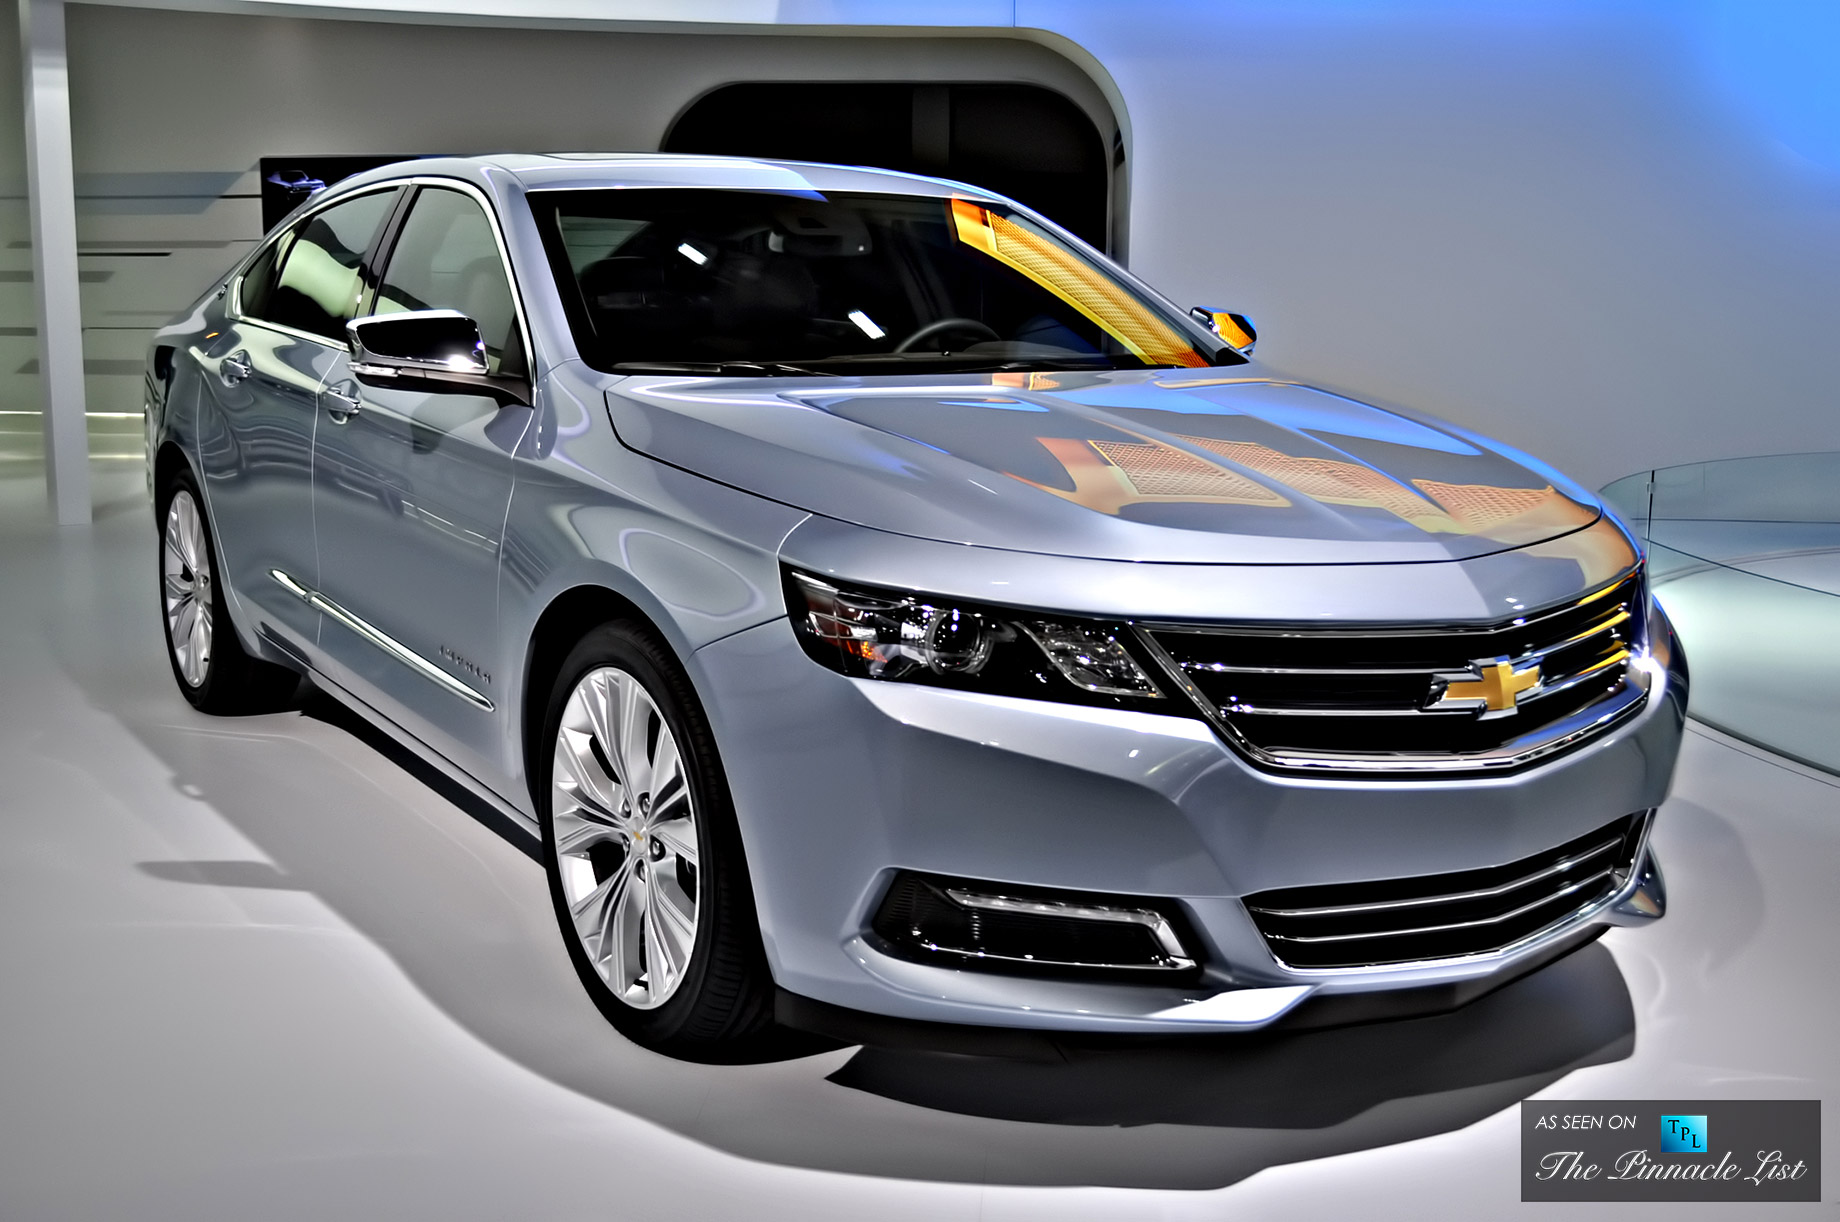 Chevrolet Impala - The New Car Market is Back - 4 Hot Cars Sure to Impress in 2014